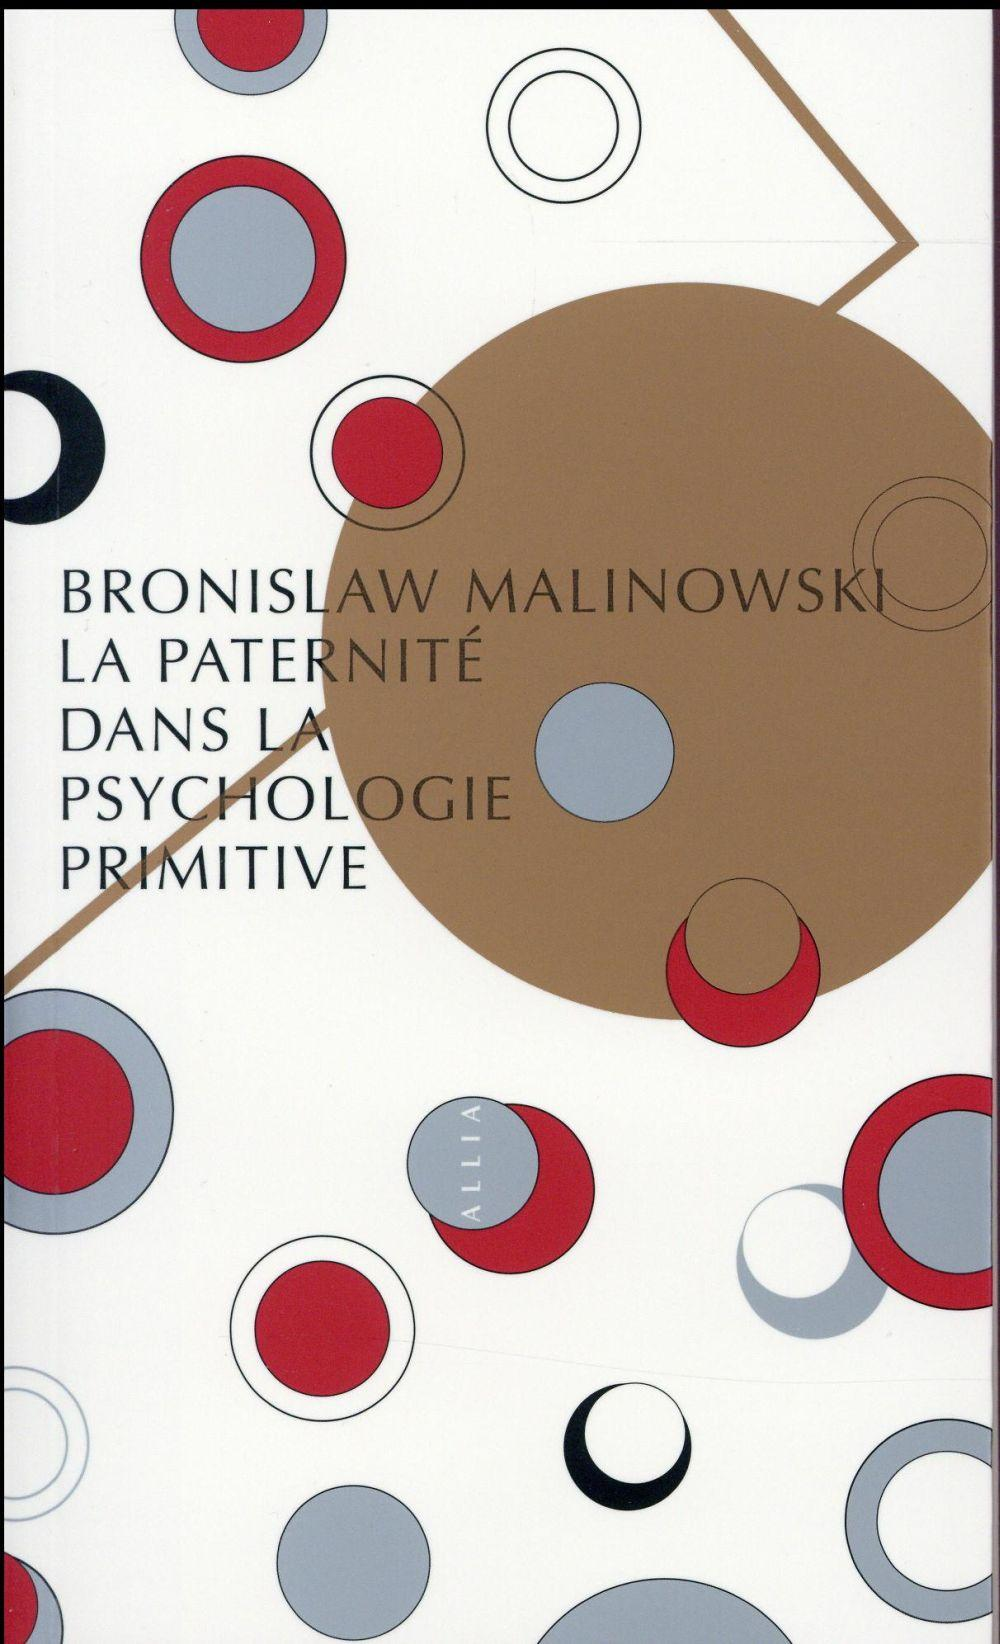 La paternité dans la psychologie primitive  - Bronislaw Malinowski